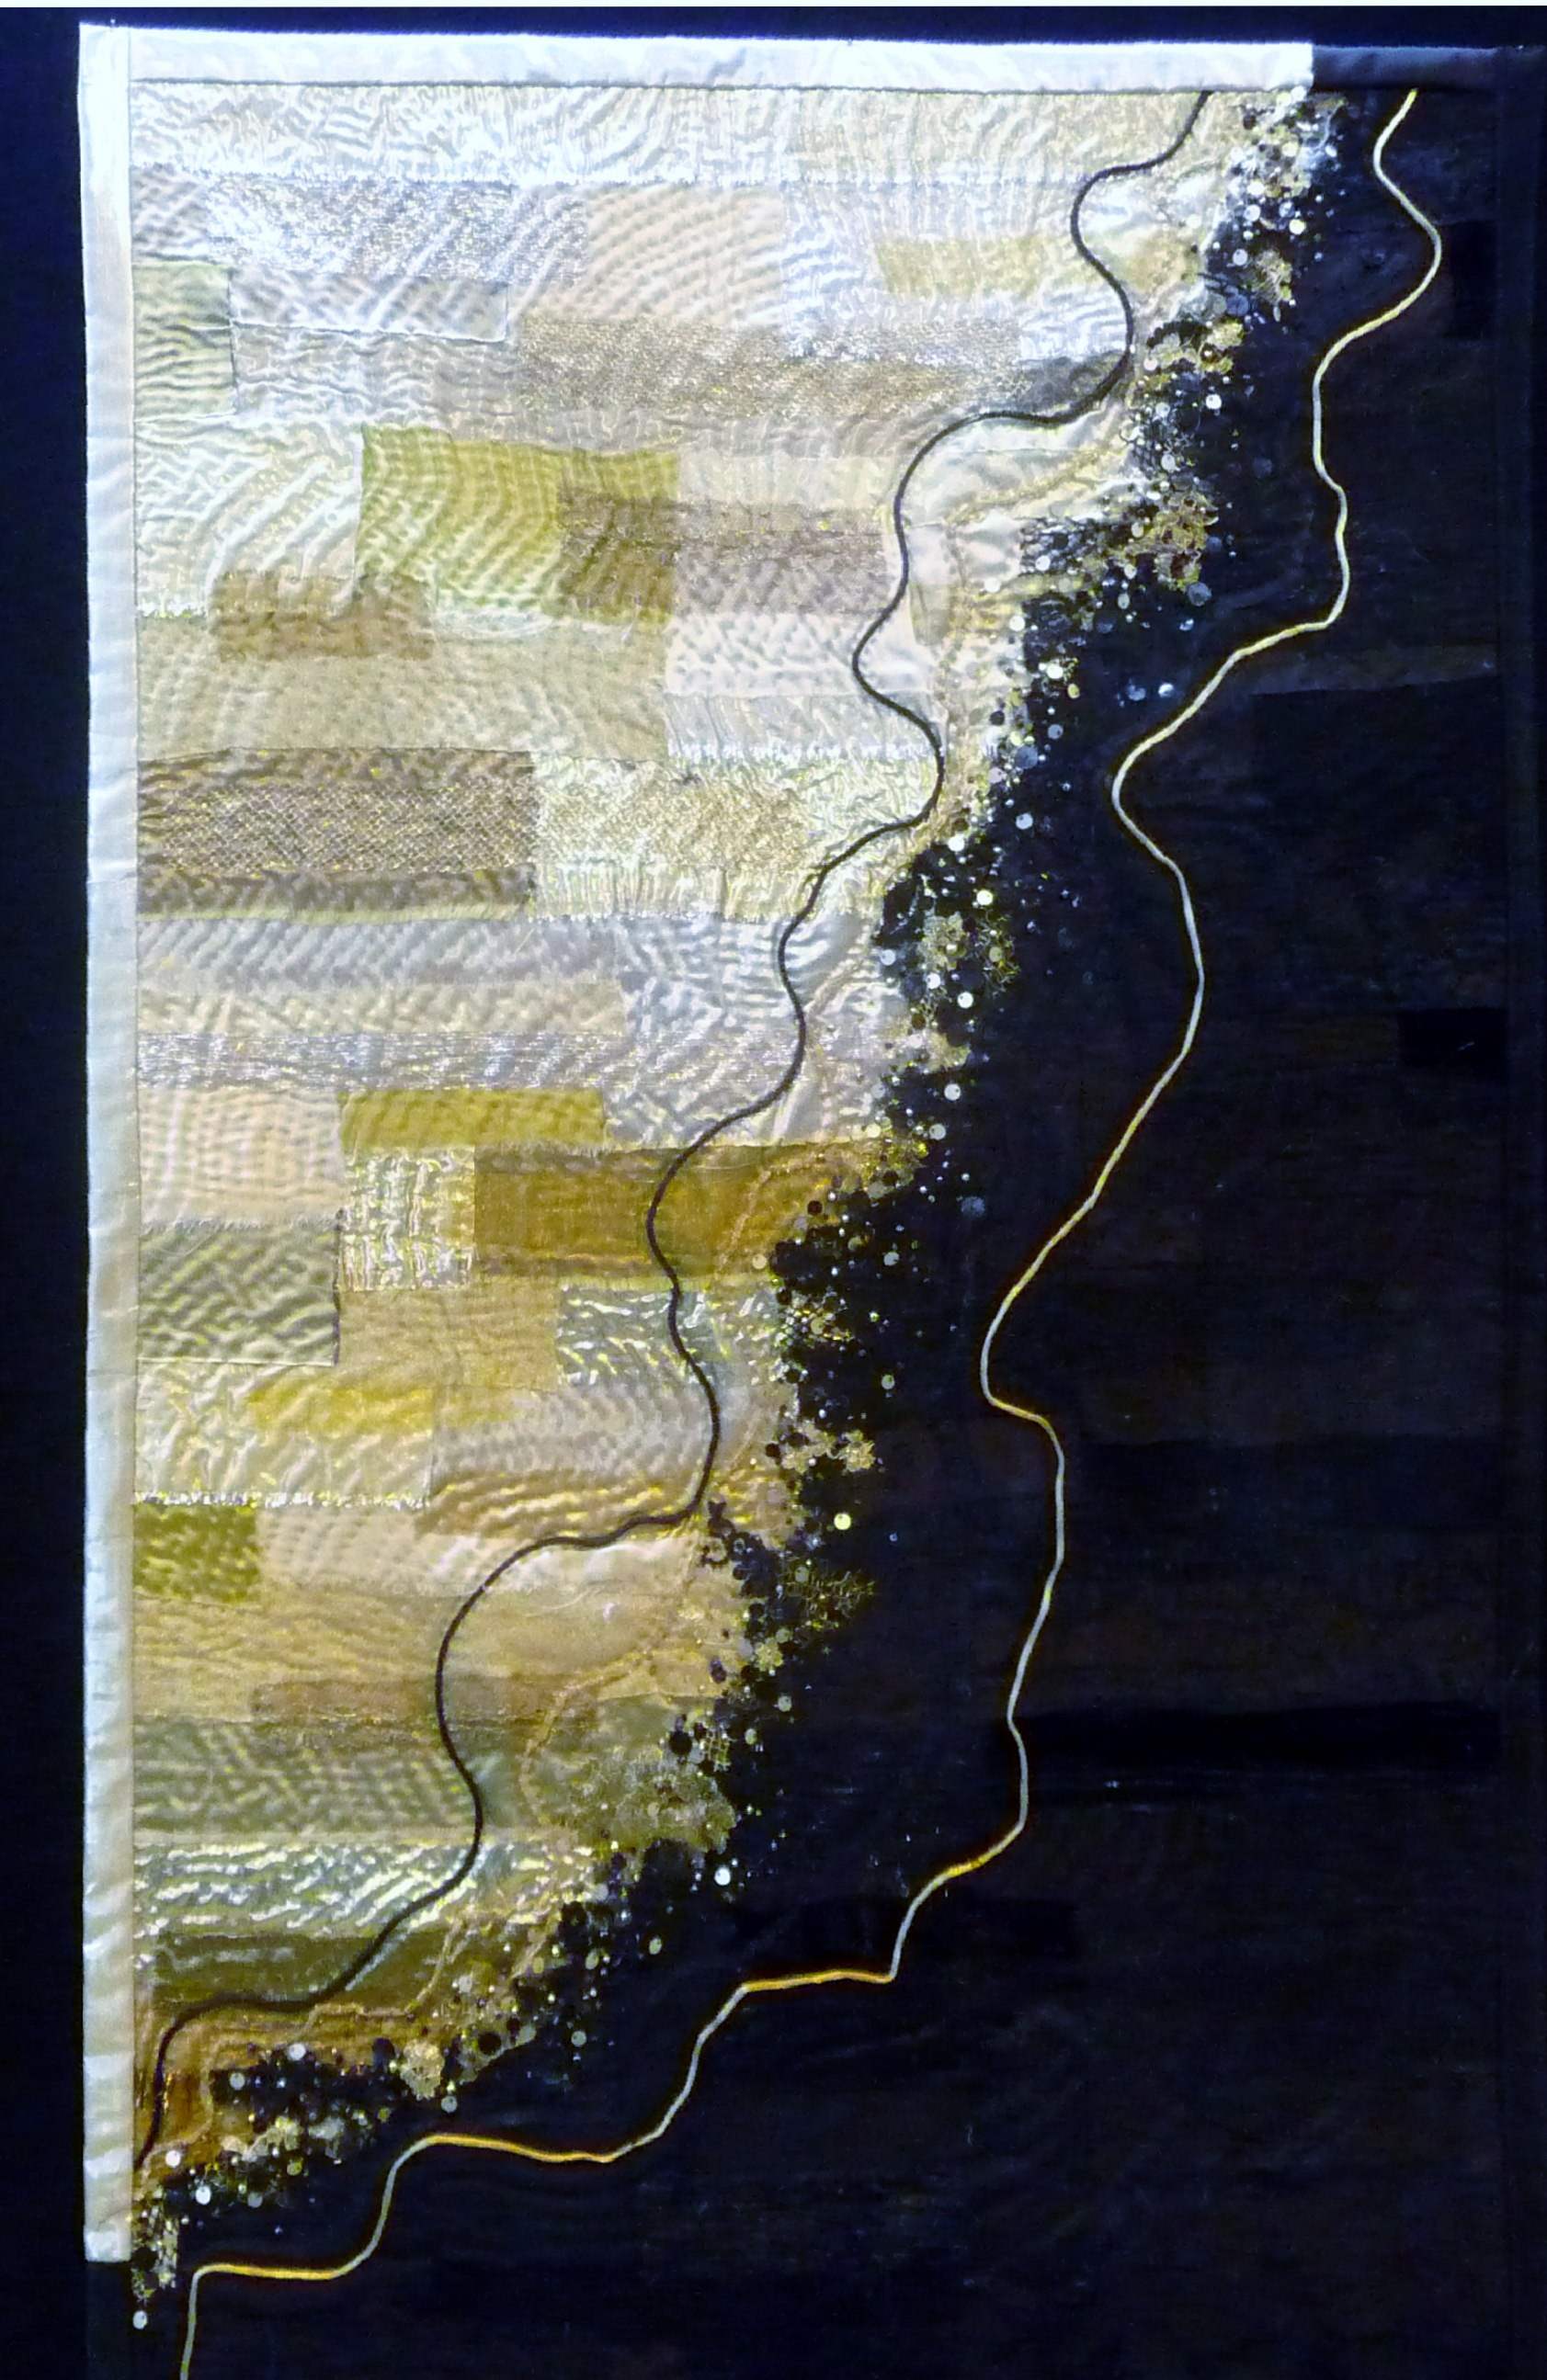 ACHEDEMIC FREEDOM by Jacqueline M Atkinson from Running with Scissors Textile Group